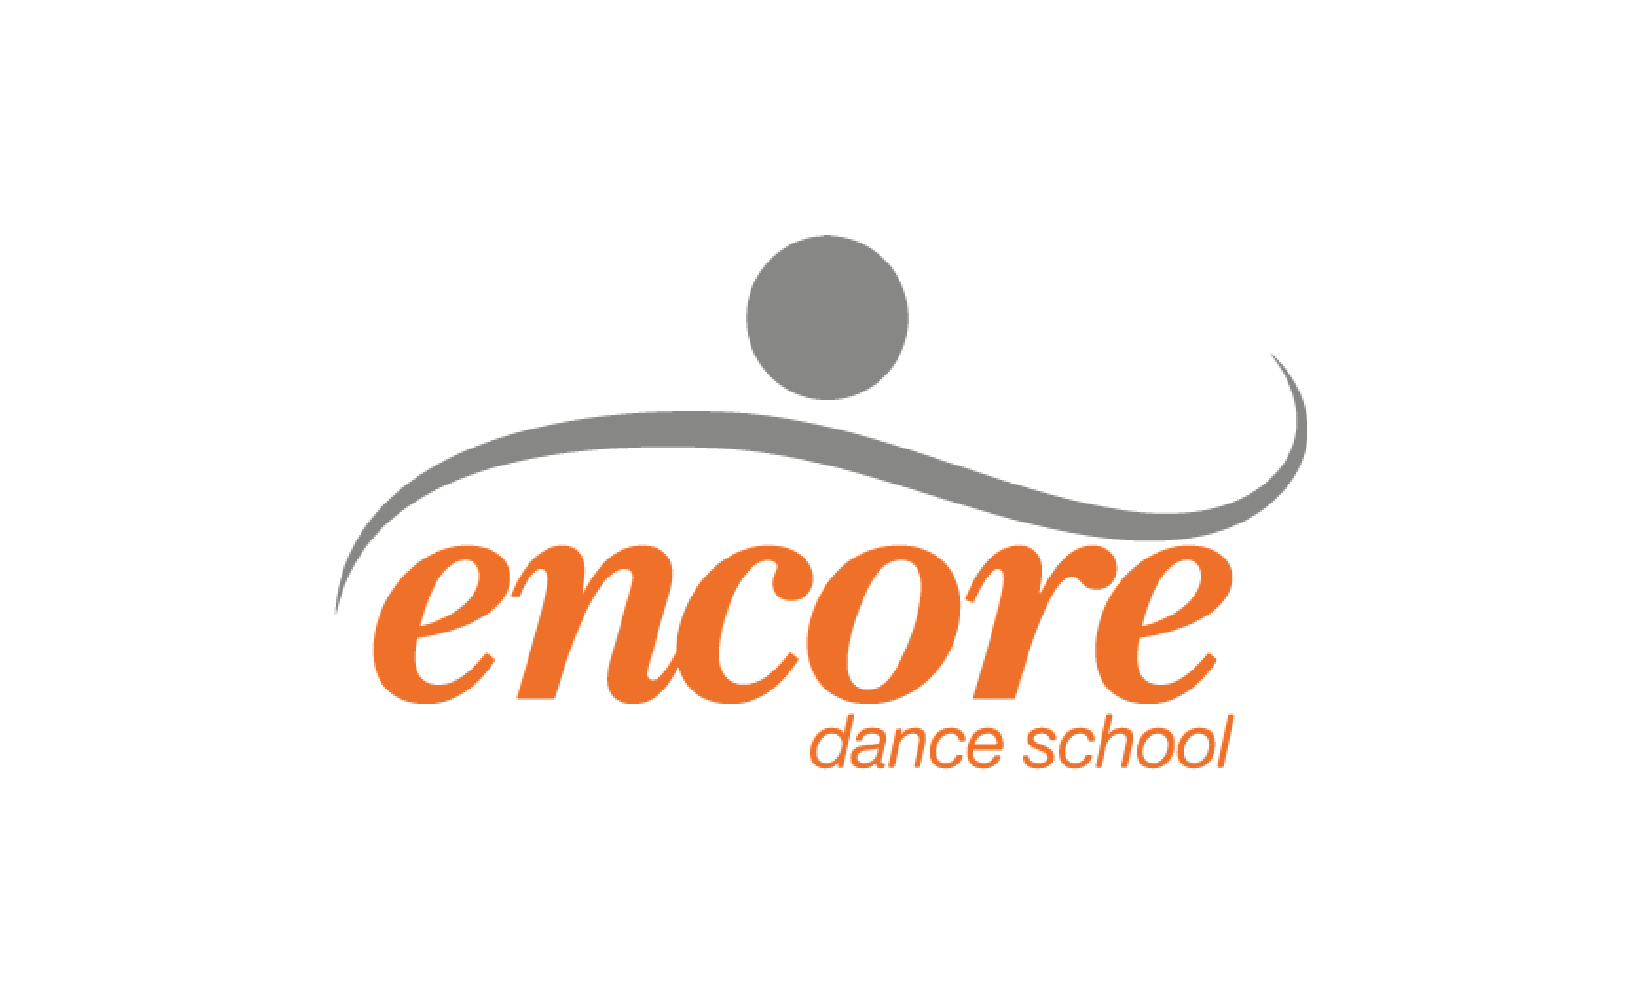 Dance school Customer Logos. ai-30.png